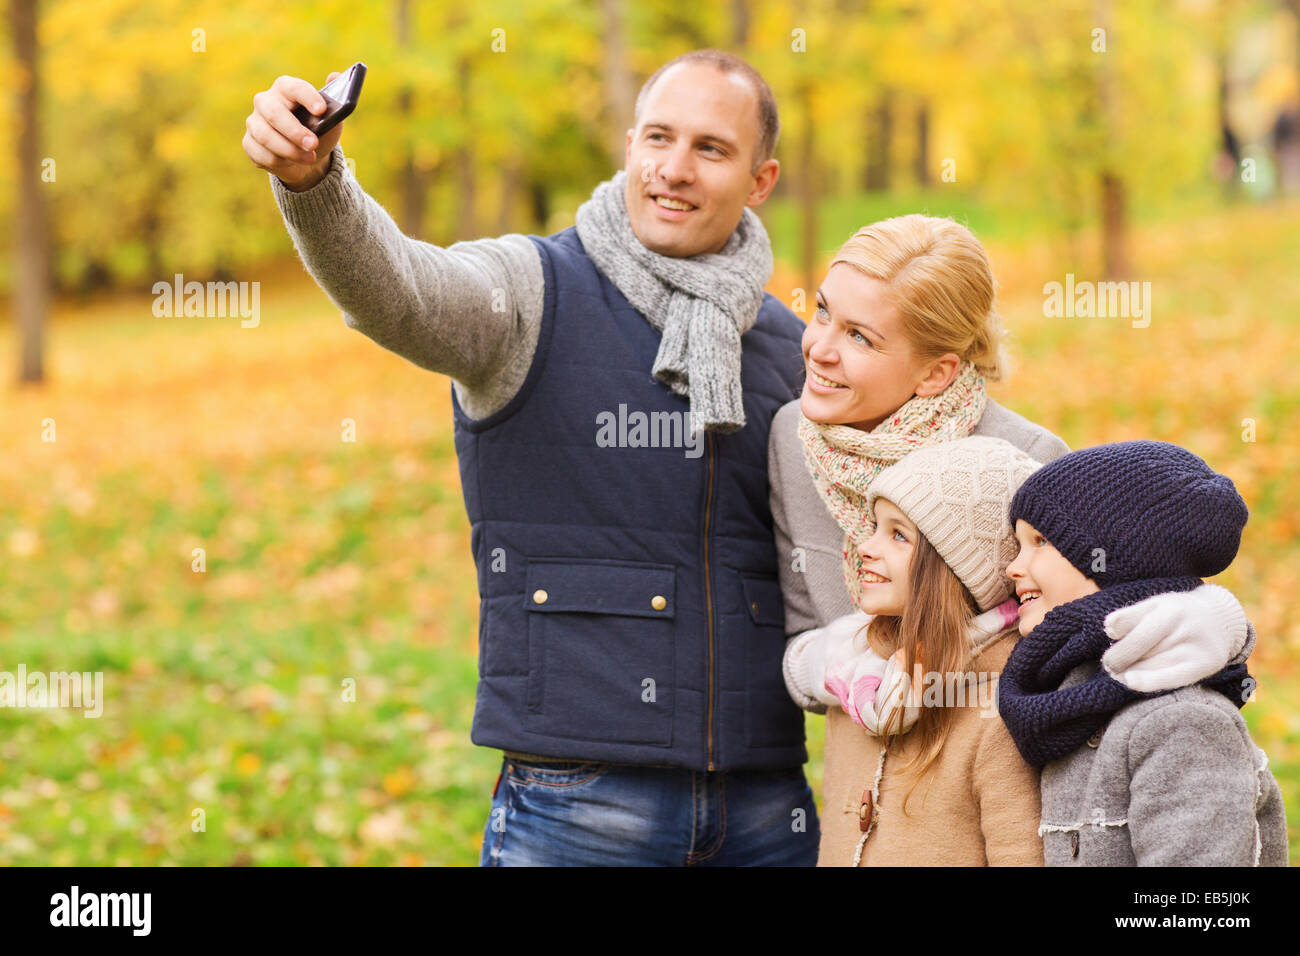 happy family with camera in autumn park - Stock Image